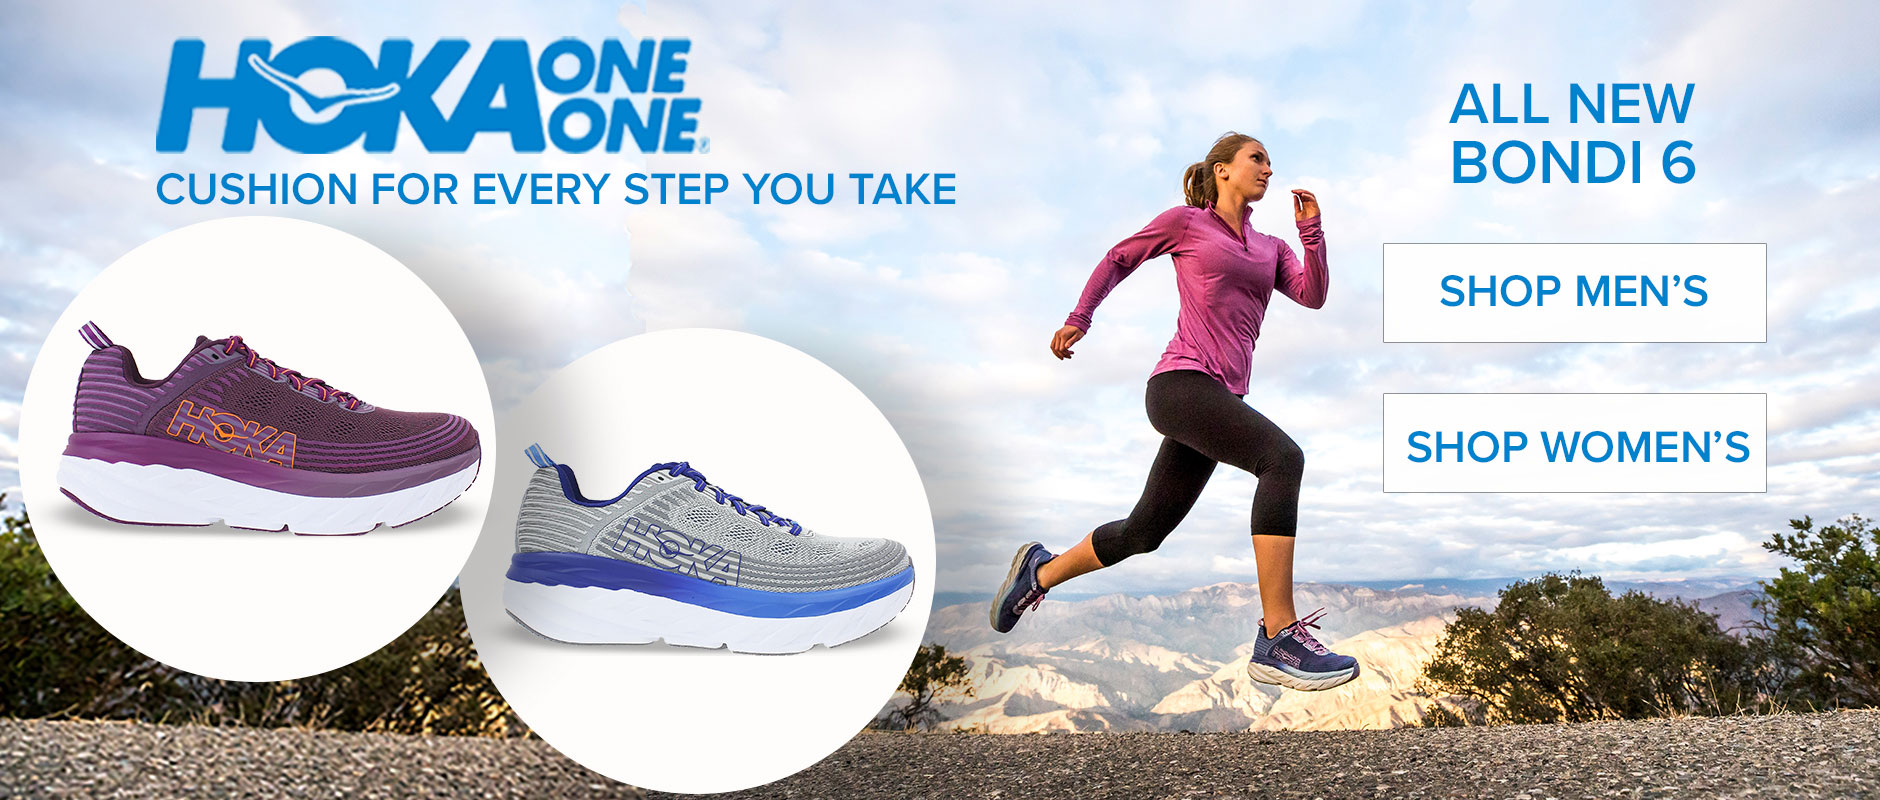 Hoka Bondi 6: Cushion for every step of the way